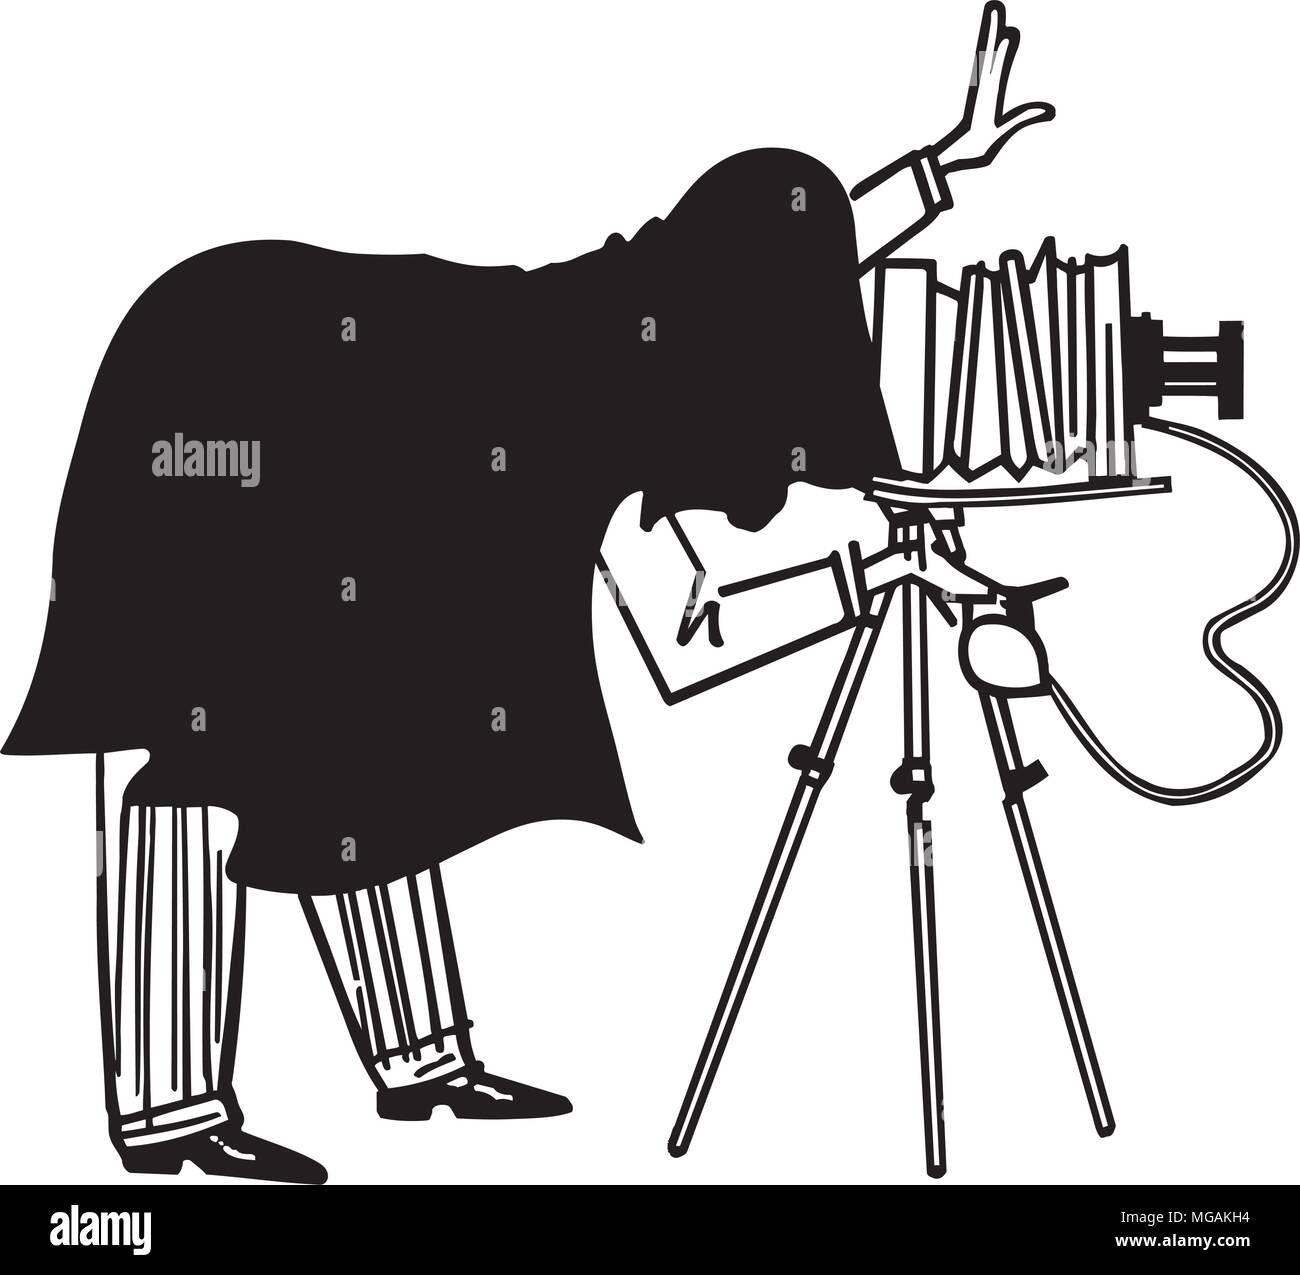 Portait Photographer - Retro Clipart Illustration - Stock Image